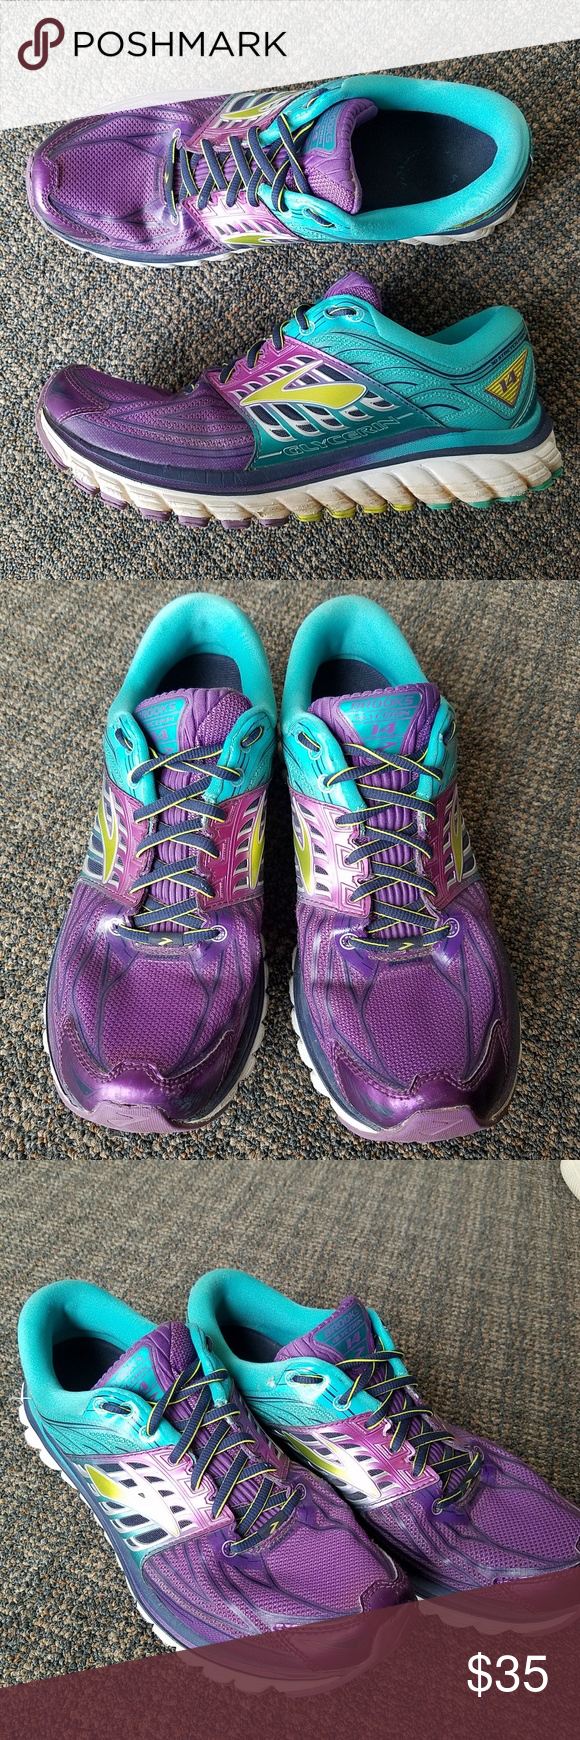 a4d18ca665373 Brooks Glycerin 14 Running Shoes Purple Lime sz 11 Brooks Glycerin 14 Pansy  Ceramic Purple Lime